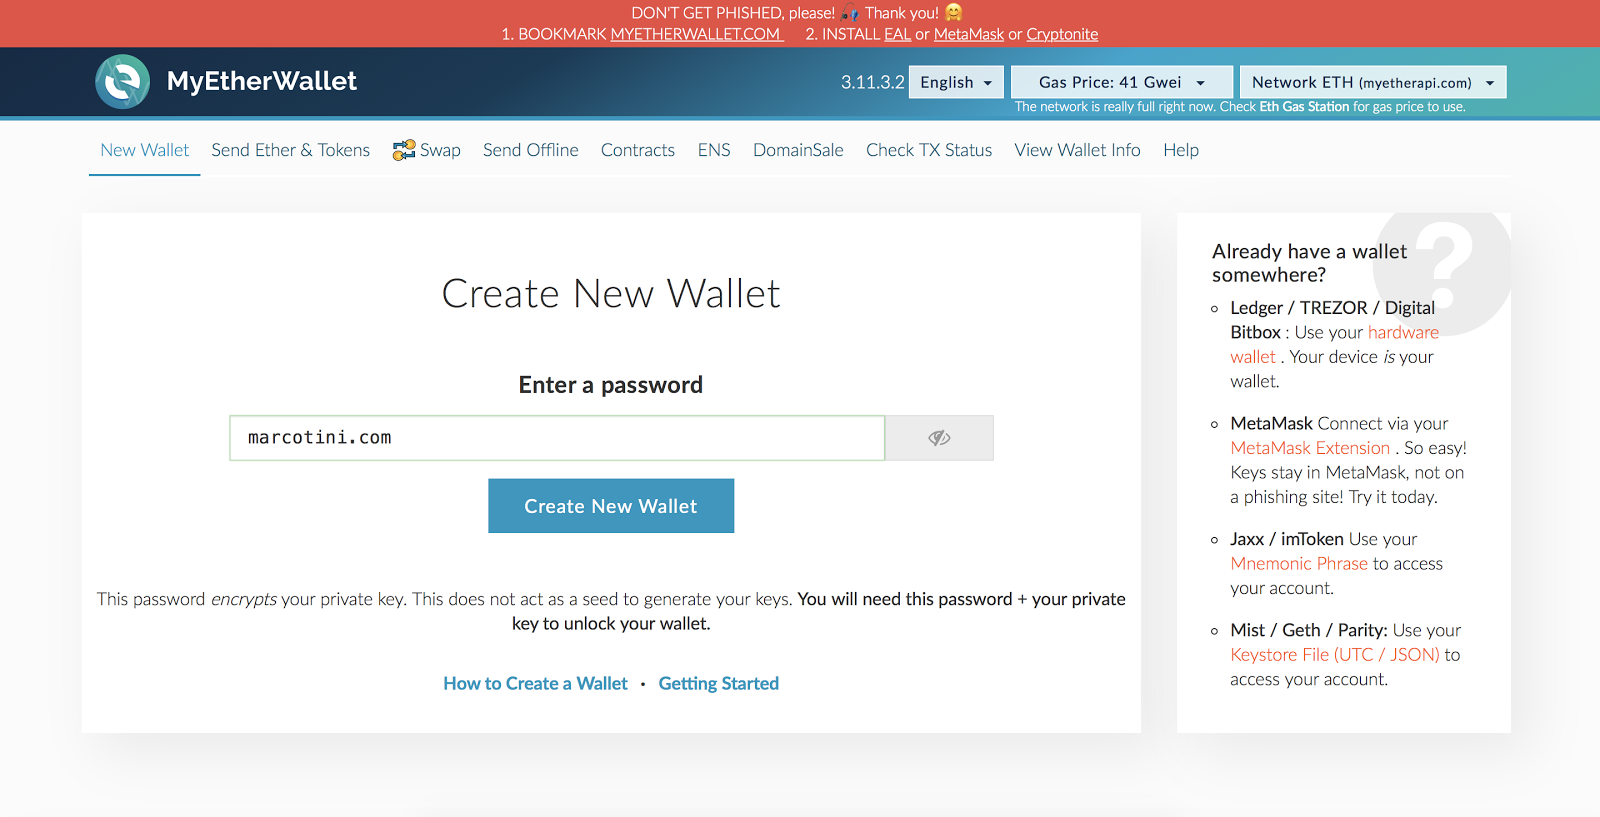 Come scaricare e usare MyEtherWallet offline